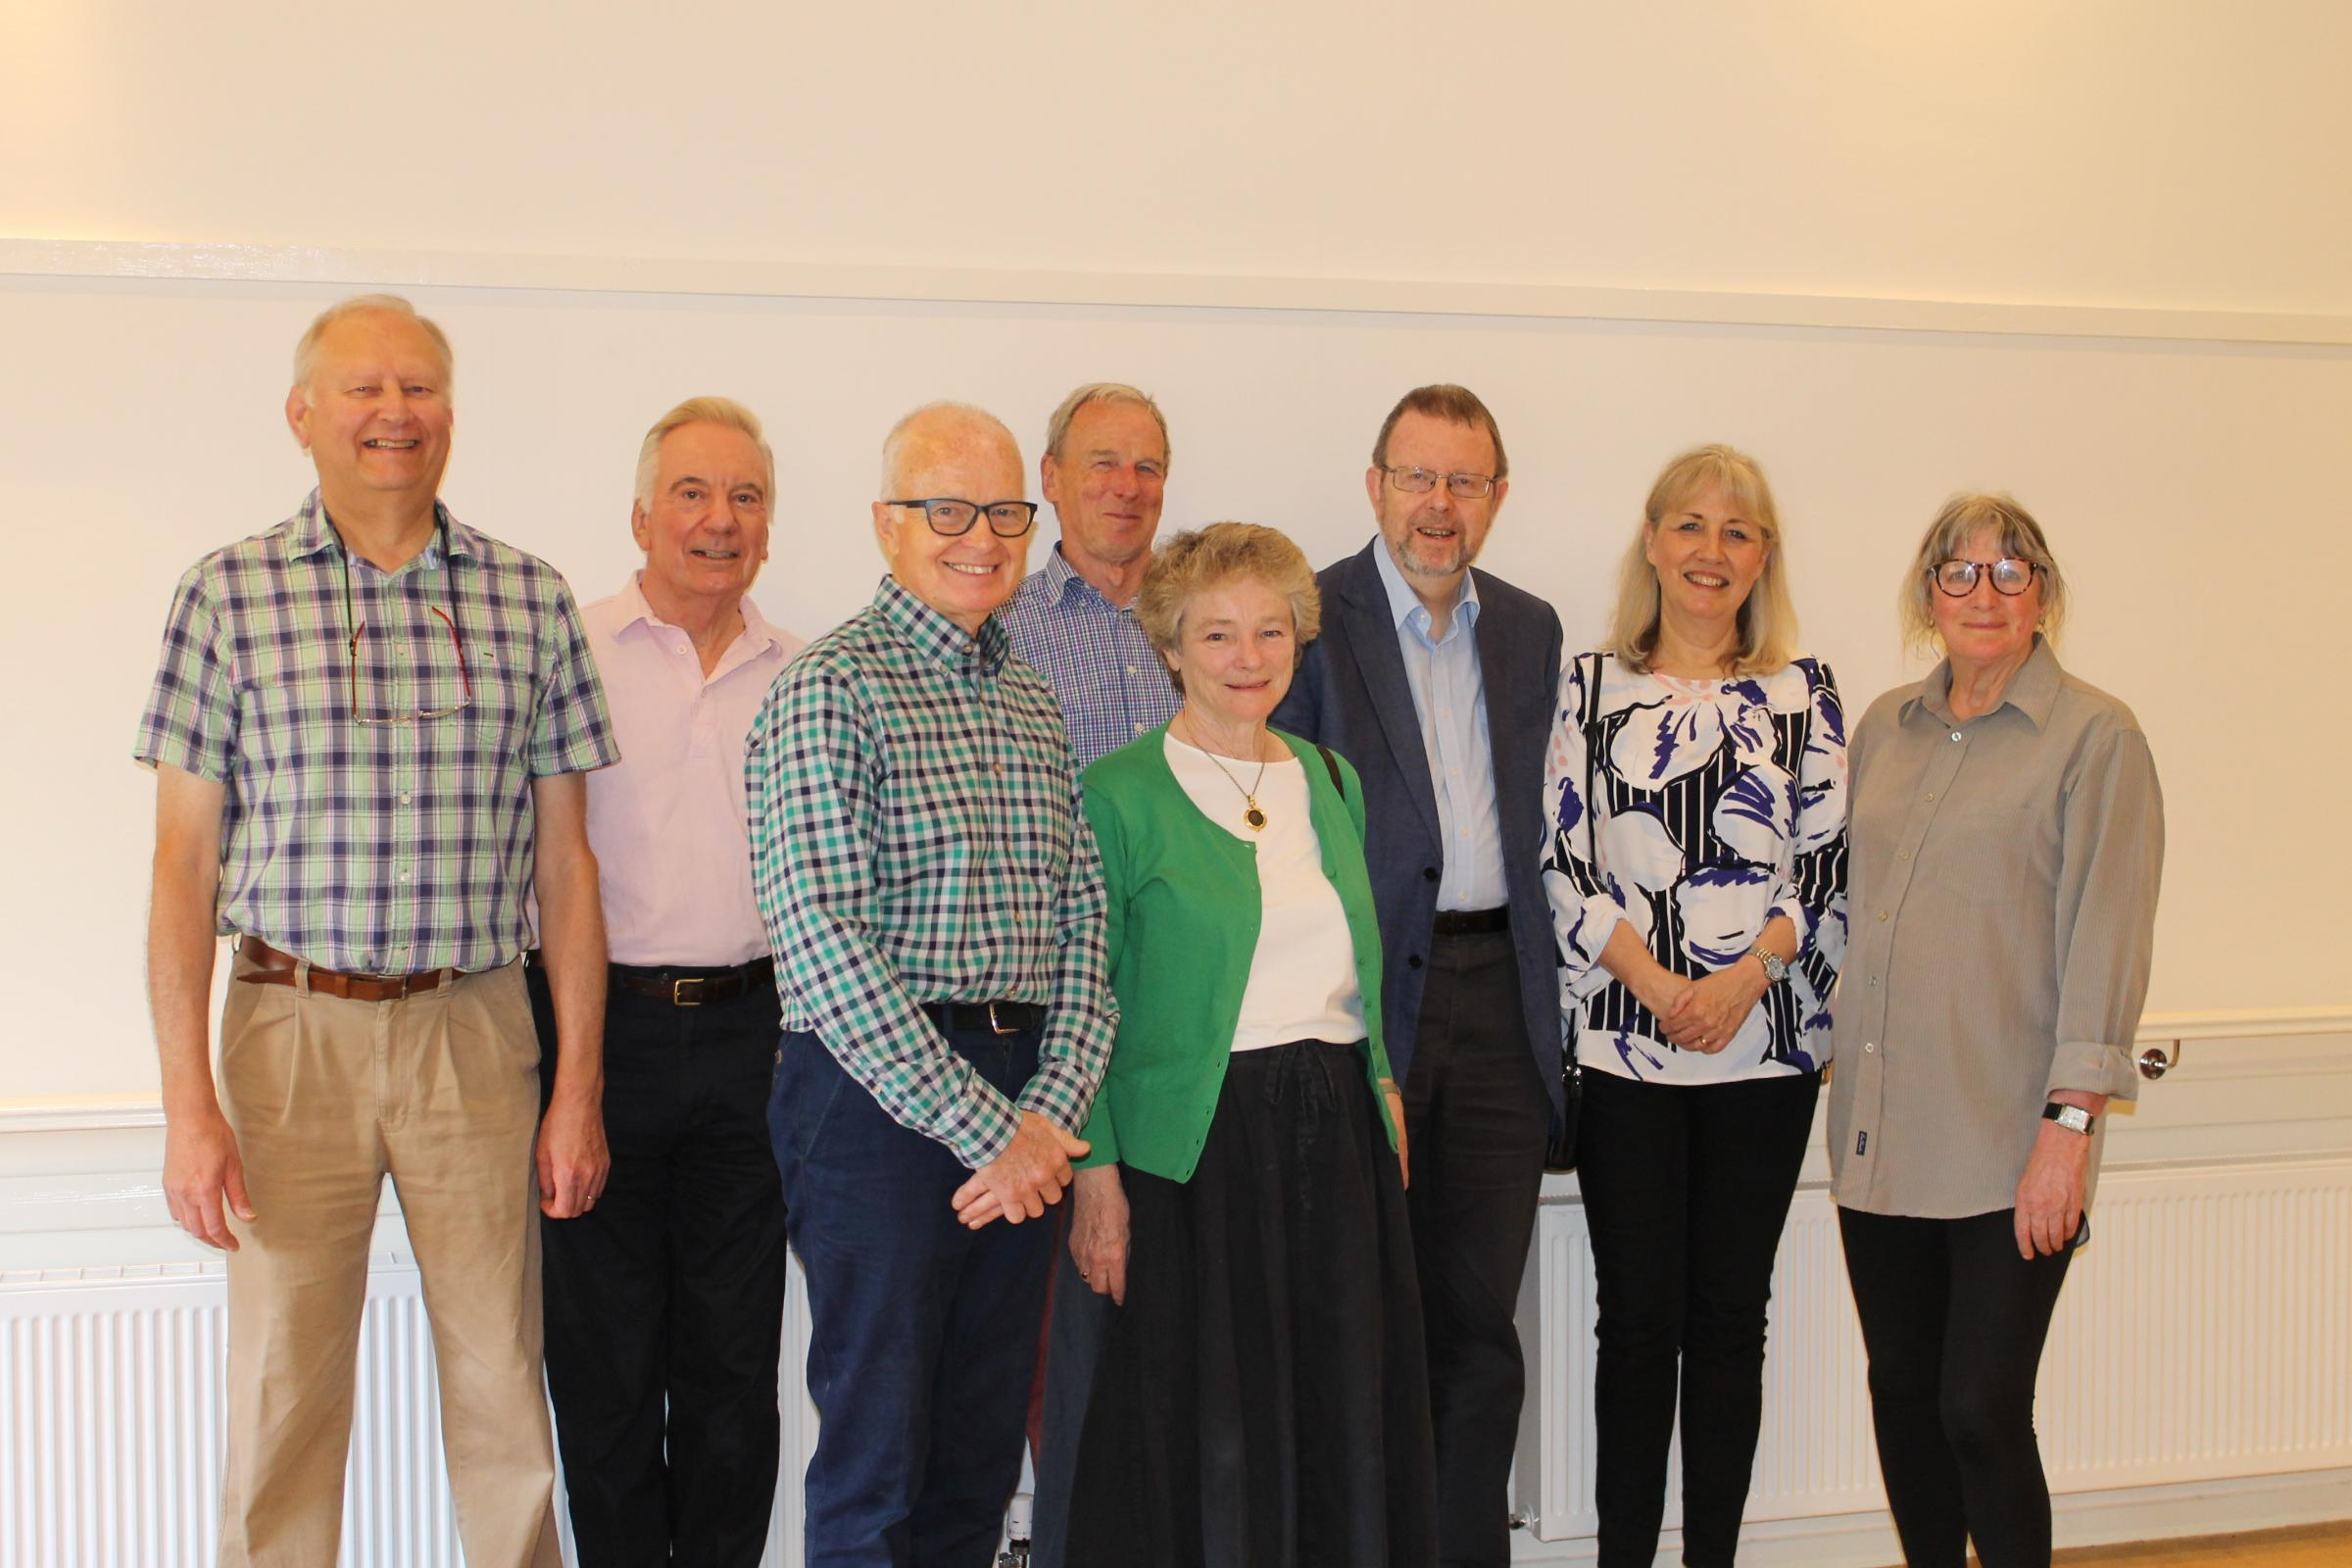 Trustees and councillors at the opening. Back, from left, Richard Medlin, John Trueman, Stafford Napier, Cllr Rob Golding, Cllr Diane Taylor, Lyn Hardy, and, front, Jeffrey Northam and Cllr Anna McNair-Scott